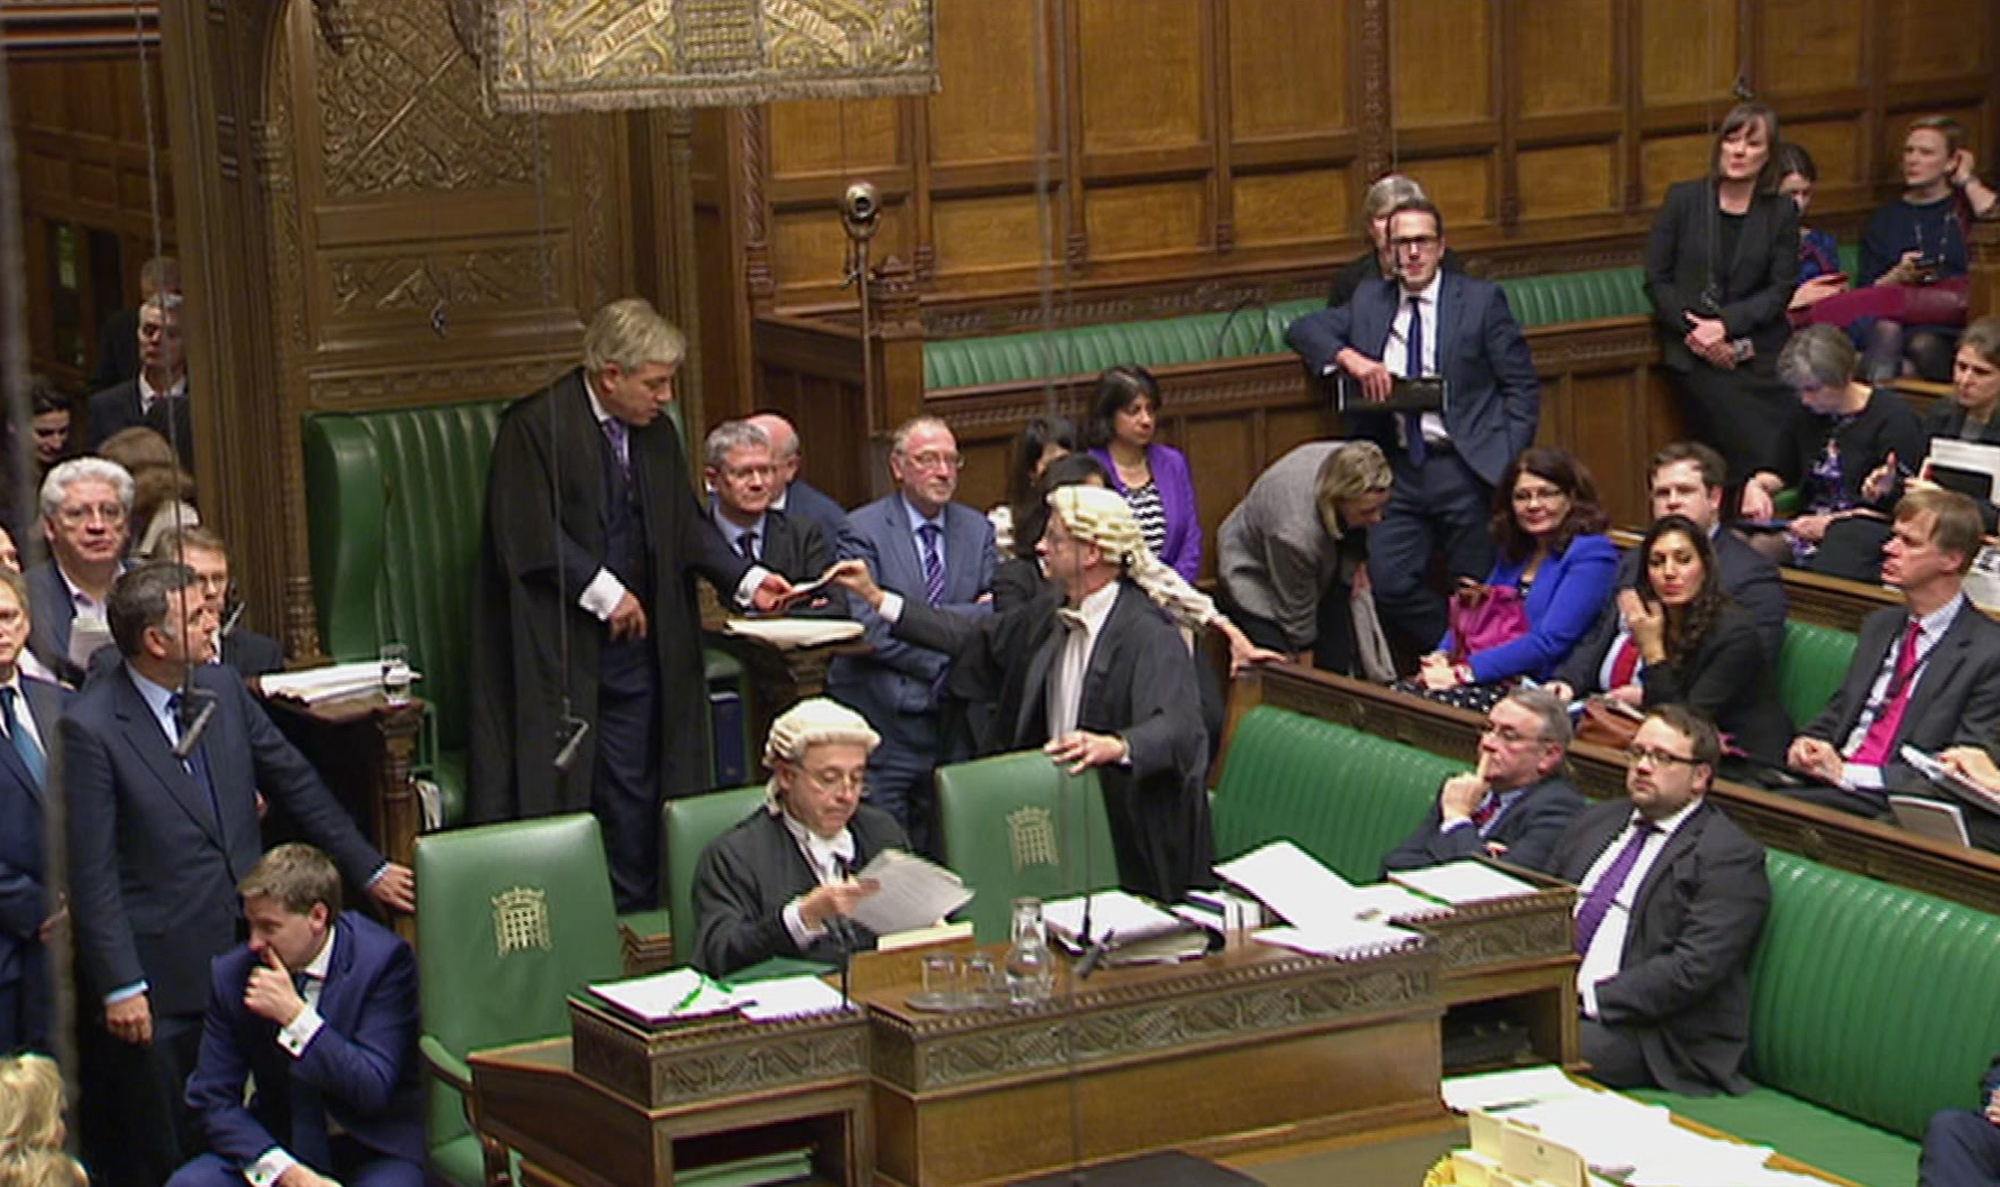 This image taken from Parliamentary Recording Unit TV shows the result of the parliamentary vote in favour of the British Government's Brexit Bill being handed to the Speaker of the House of Commons on Feb. 1, 2017. (AP Photo/Parliamentary Recording Unit, via AP)